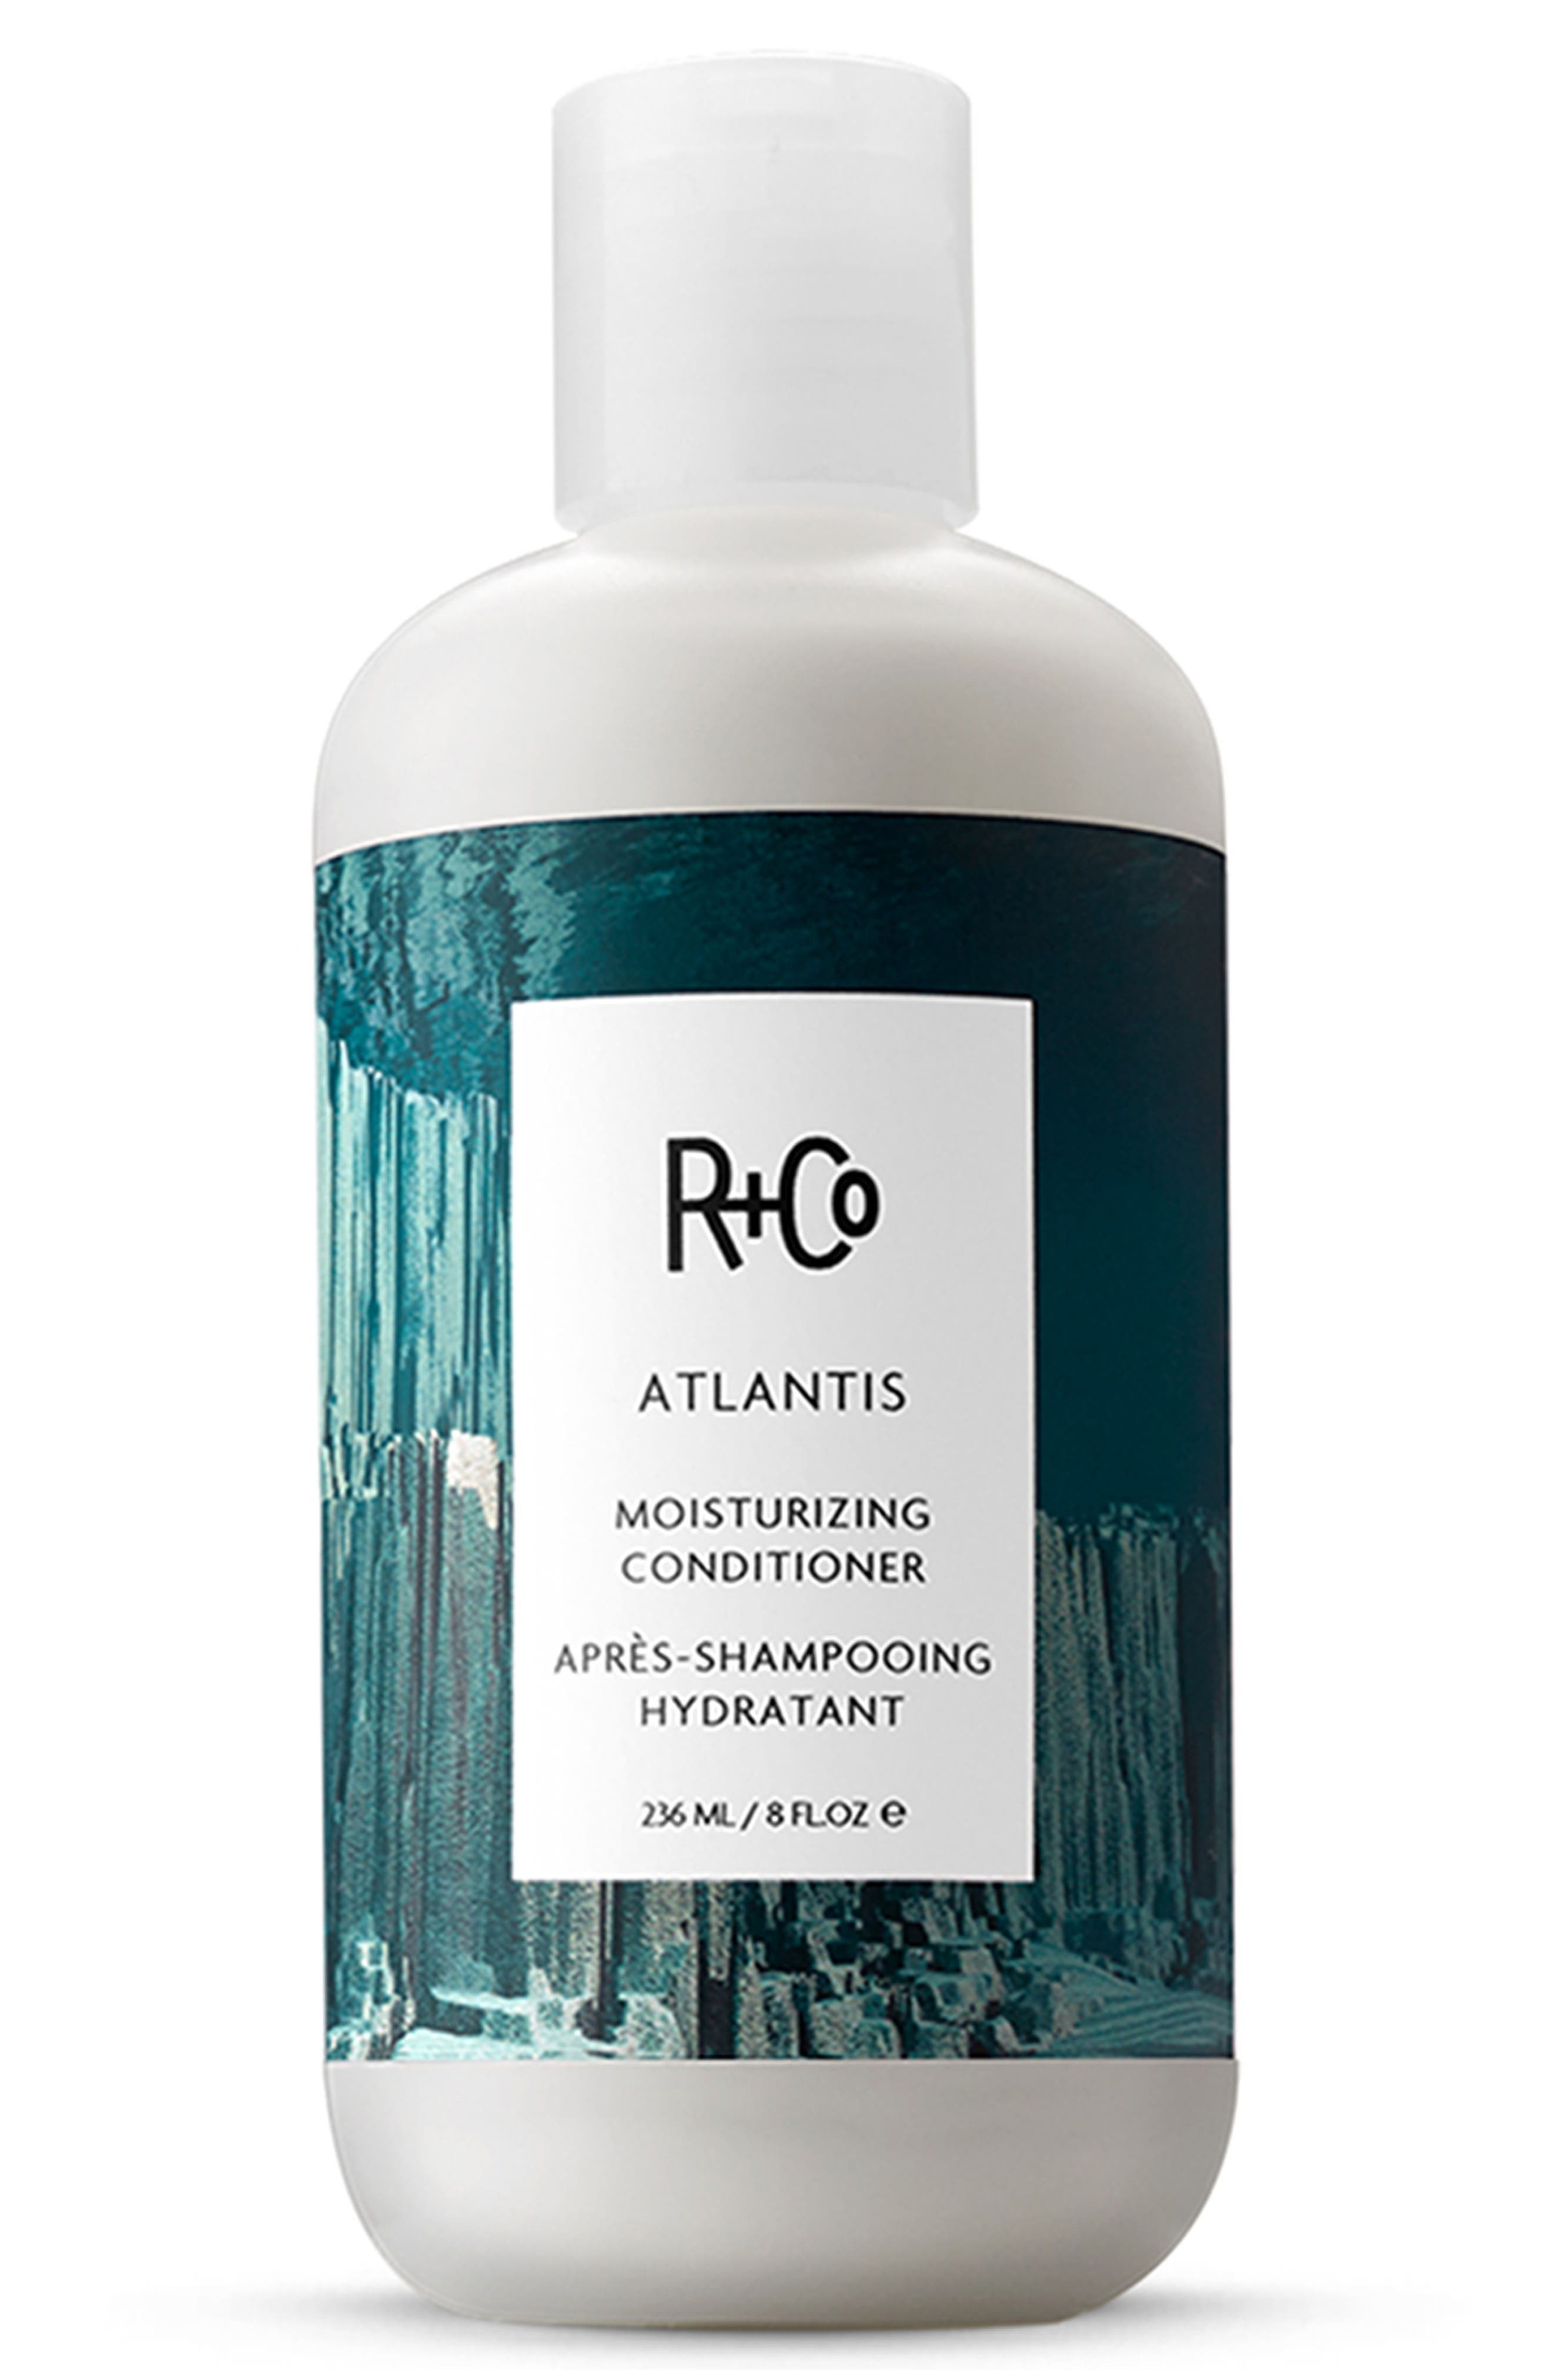 Main Image - SPACE.NK.apothecary R+Co Atlantis Moisturizing Conditioner